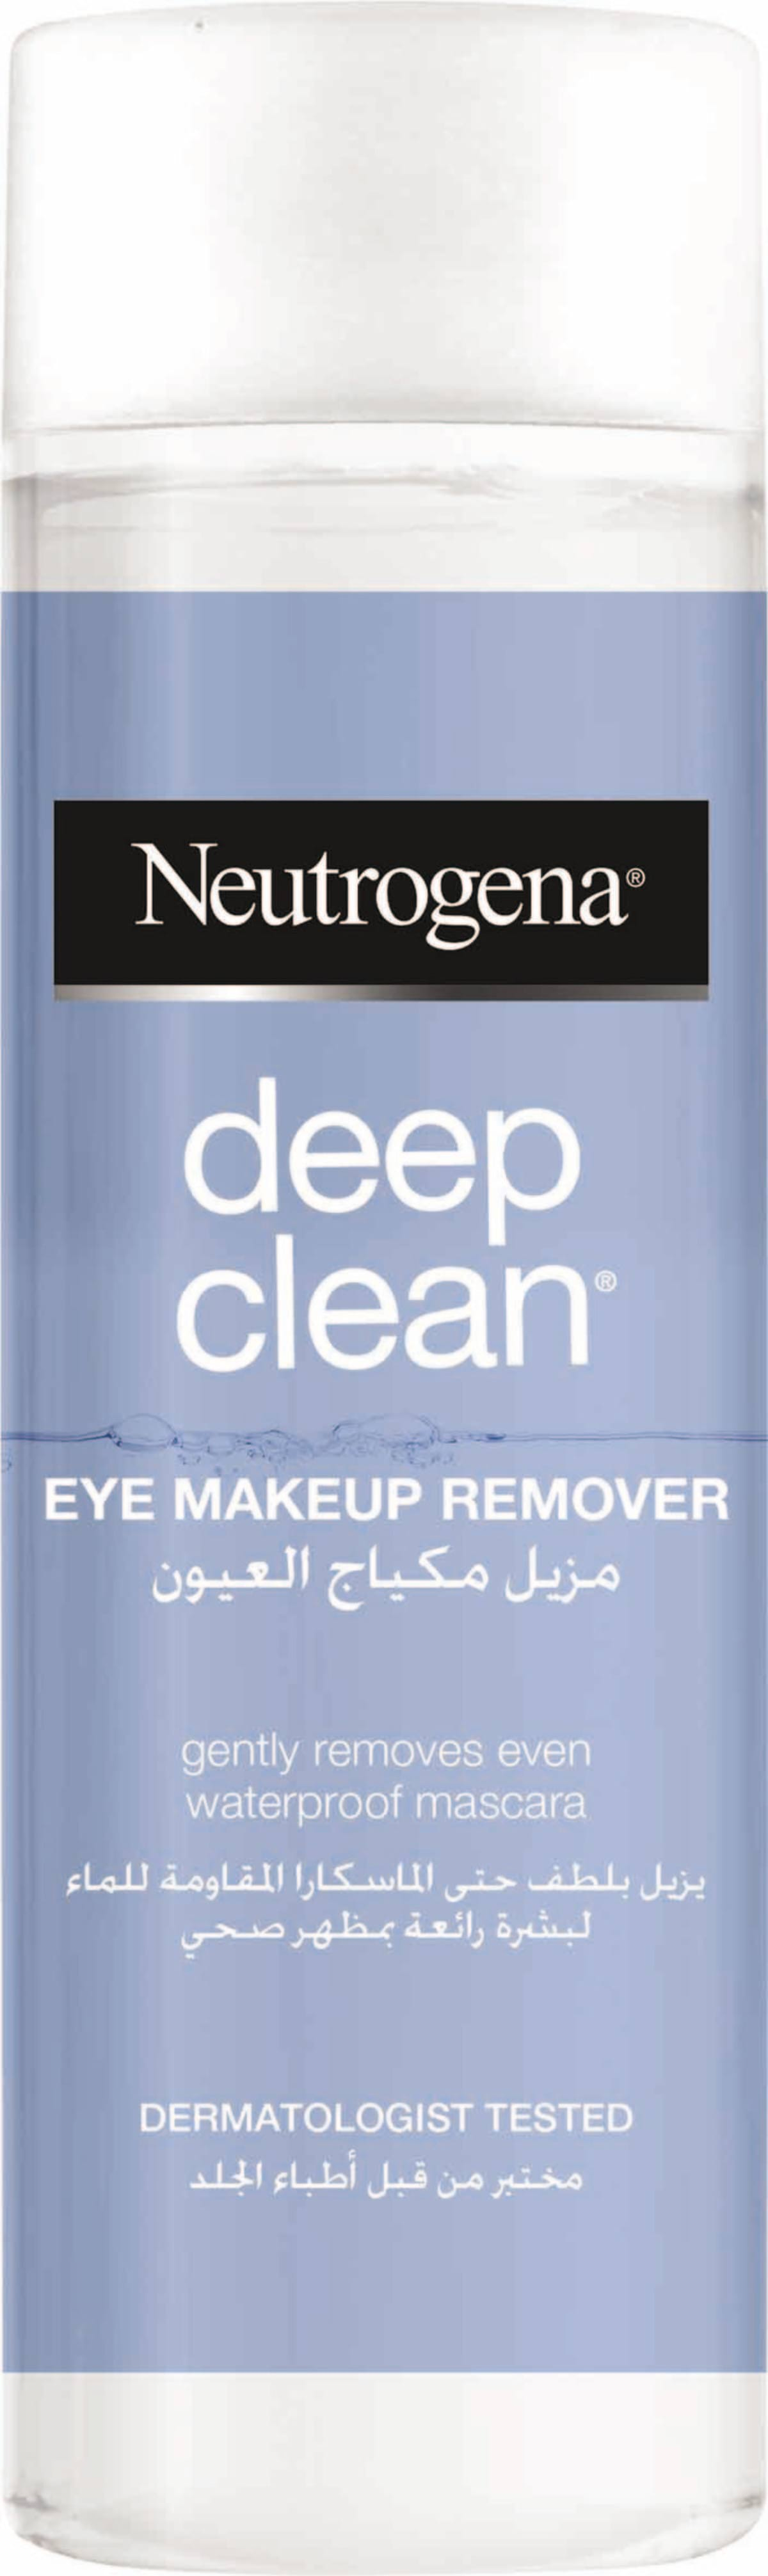 NTG_DeepClean_Deep Clean_Eye make-up remover